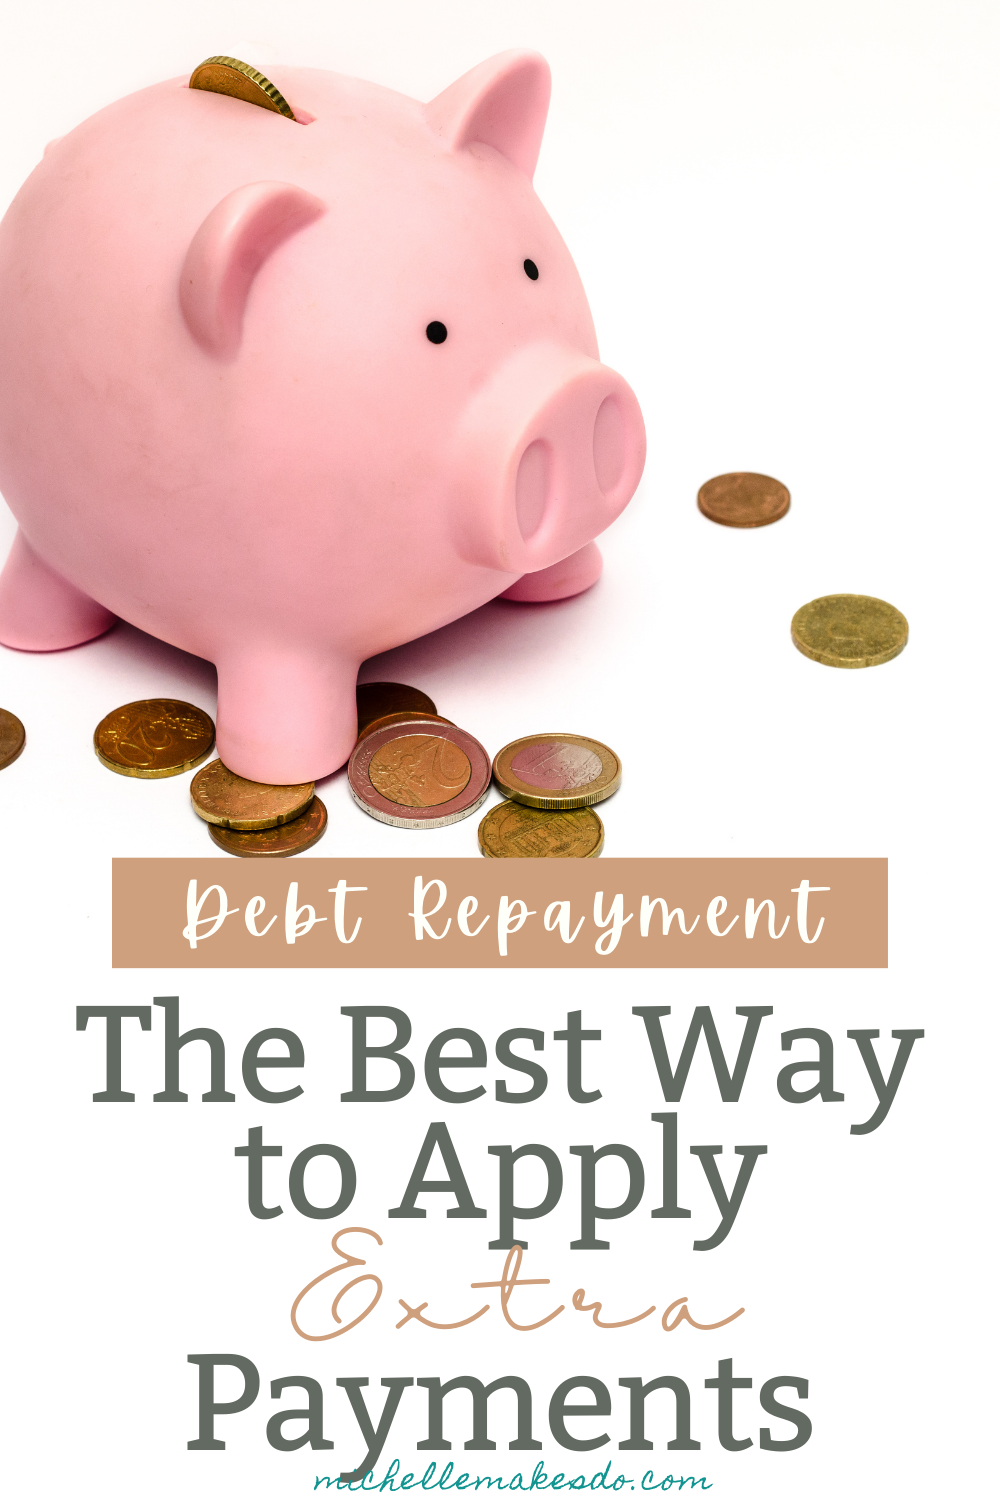 The Best Way to Apply Extra Payments